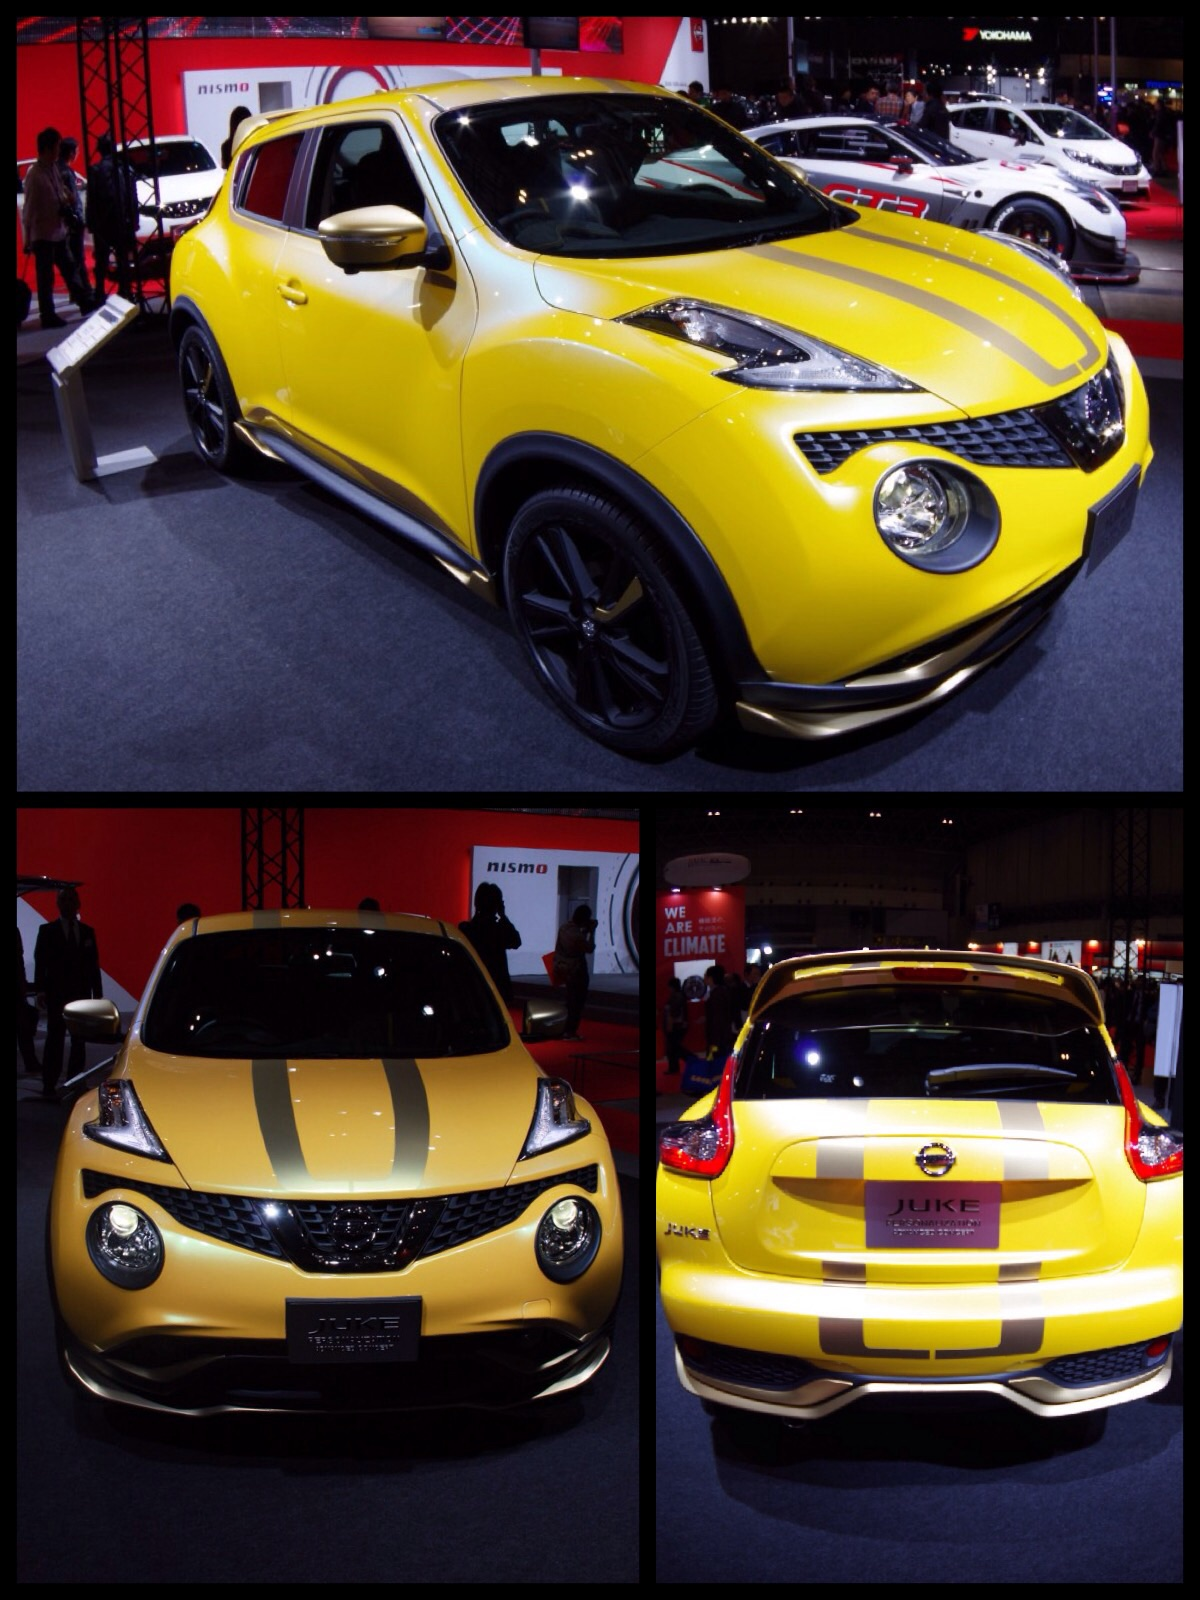 JUKE Personalization Advanced Concept日産ジューク